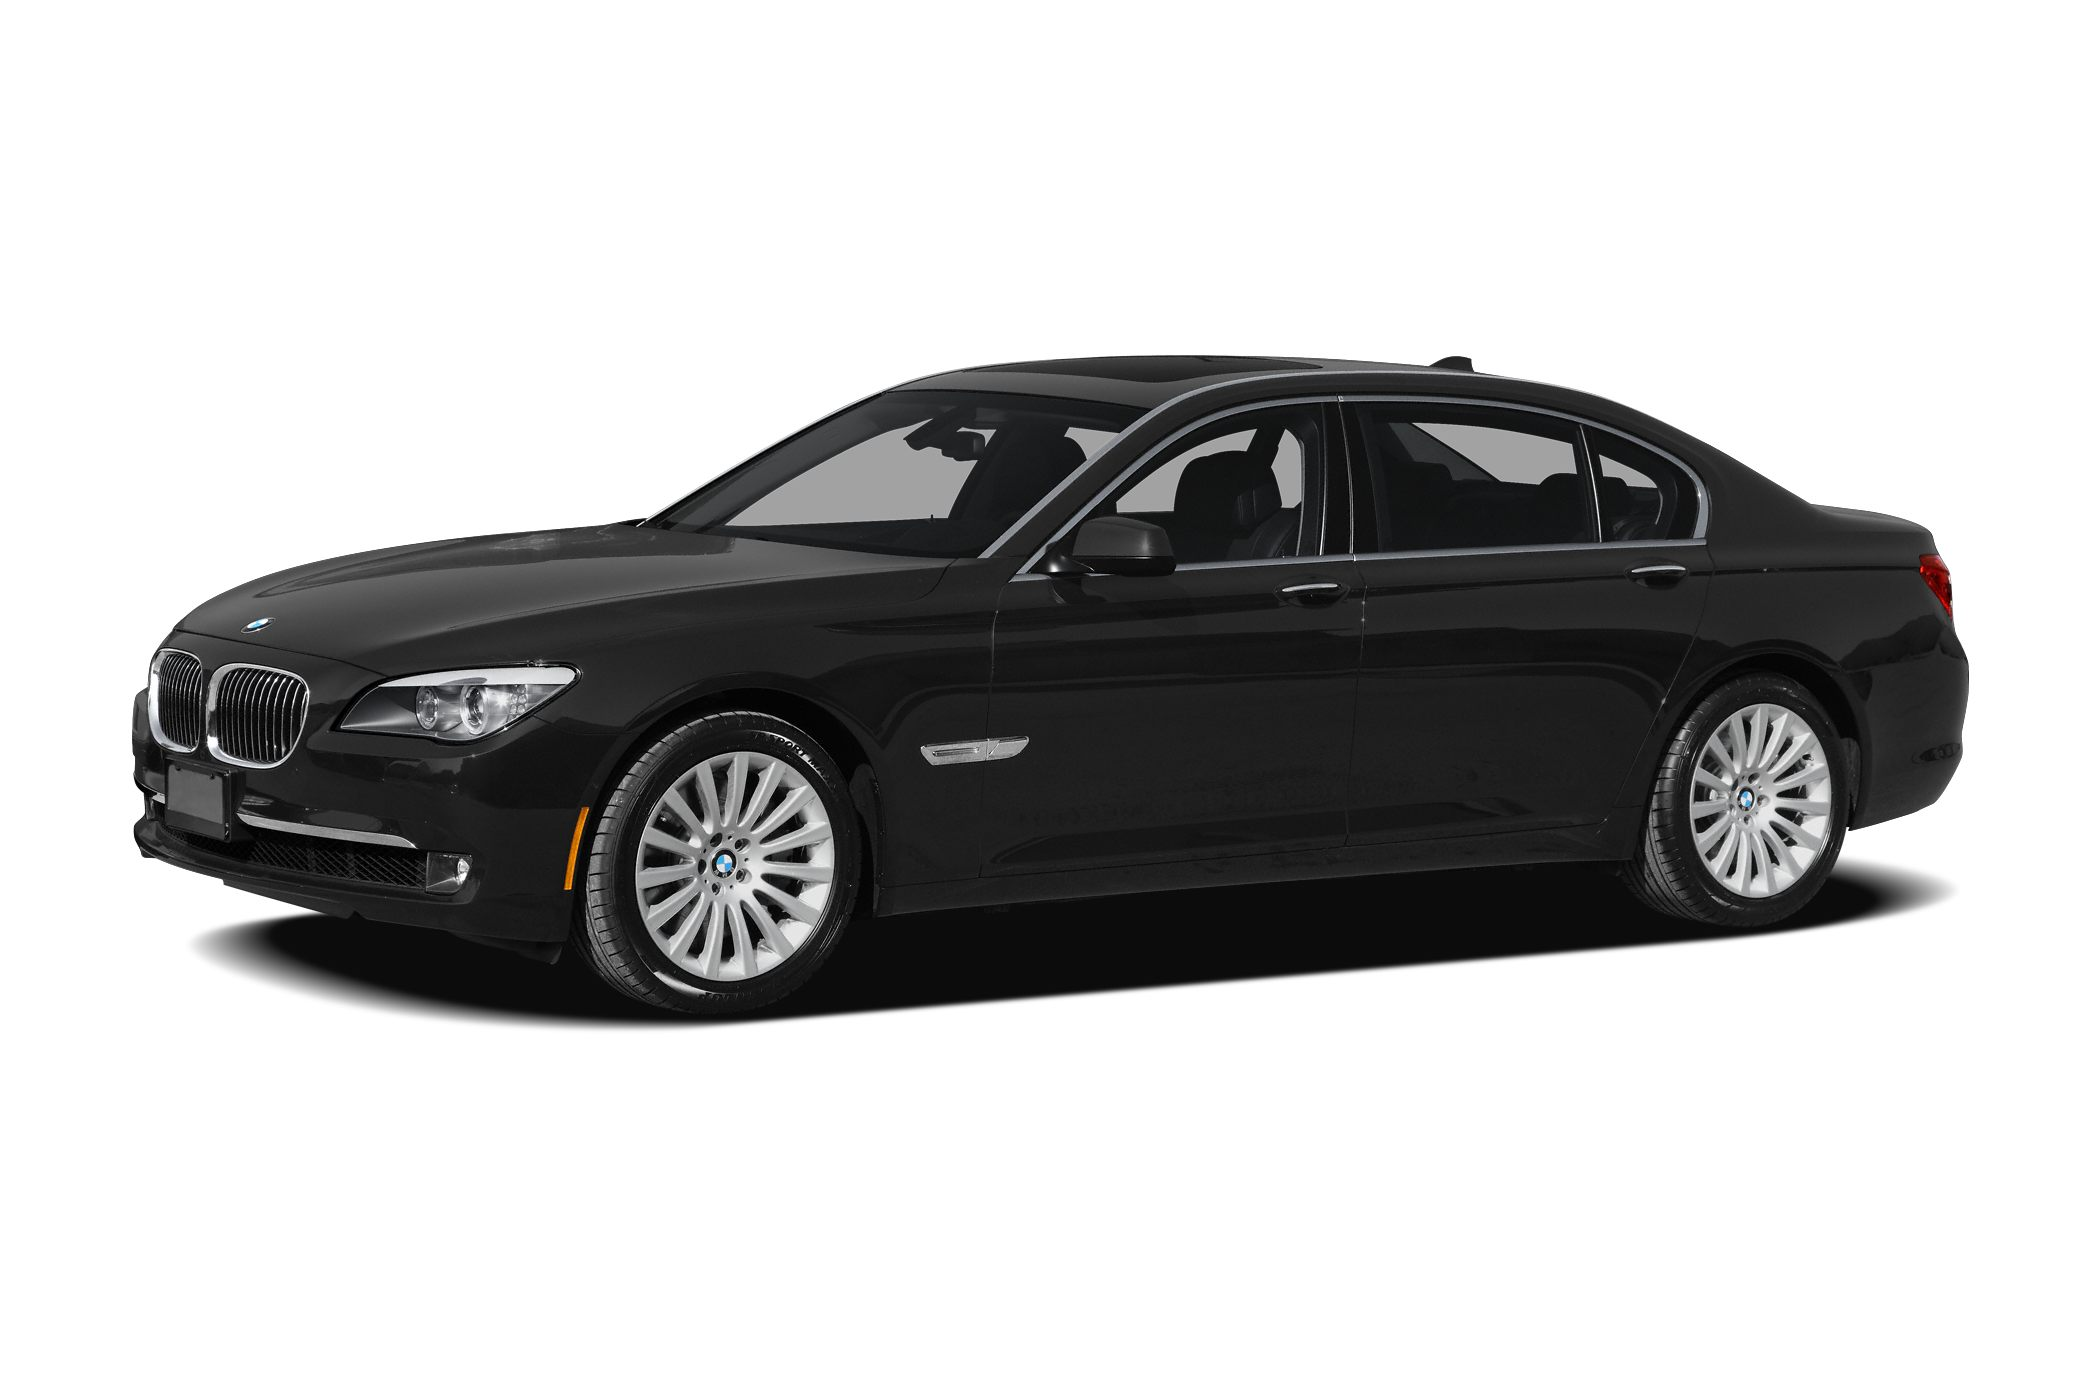 2009 BMW 750 Li Sedan for sale in Kenner for $33,795 with 57,284 miles.